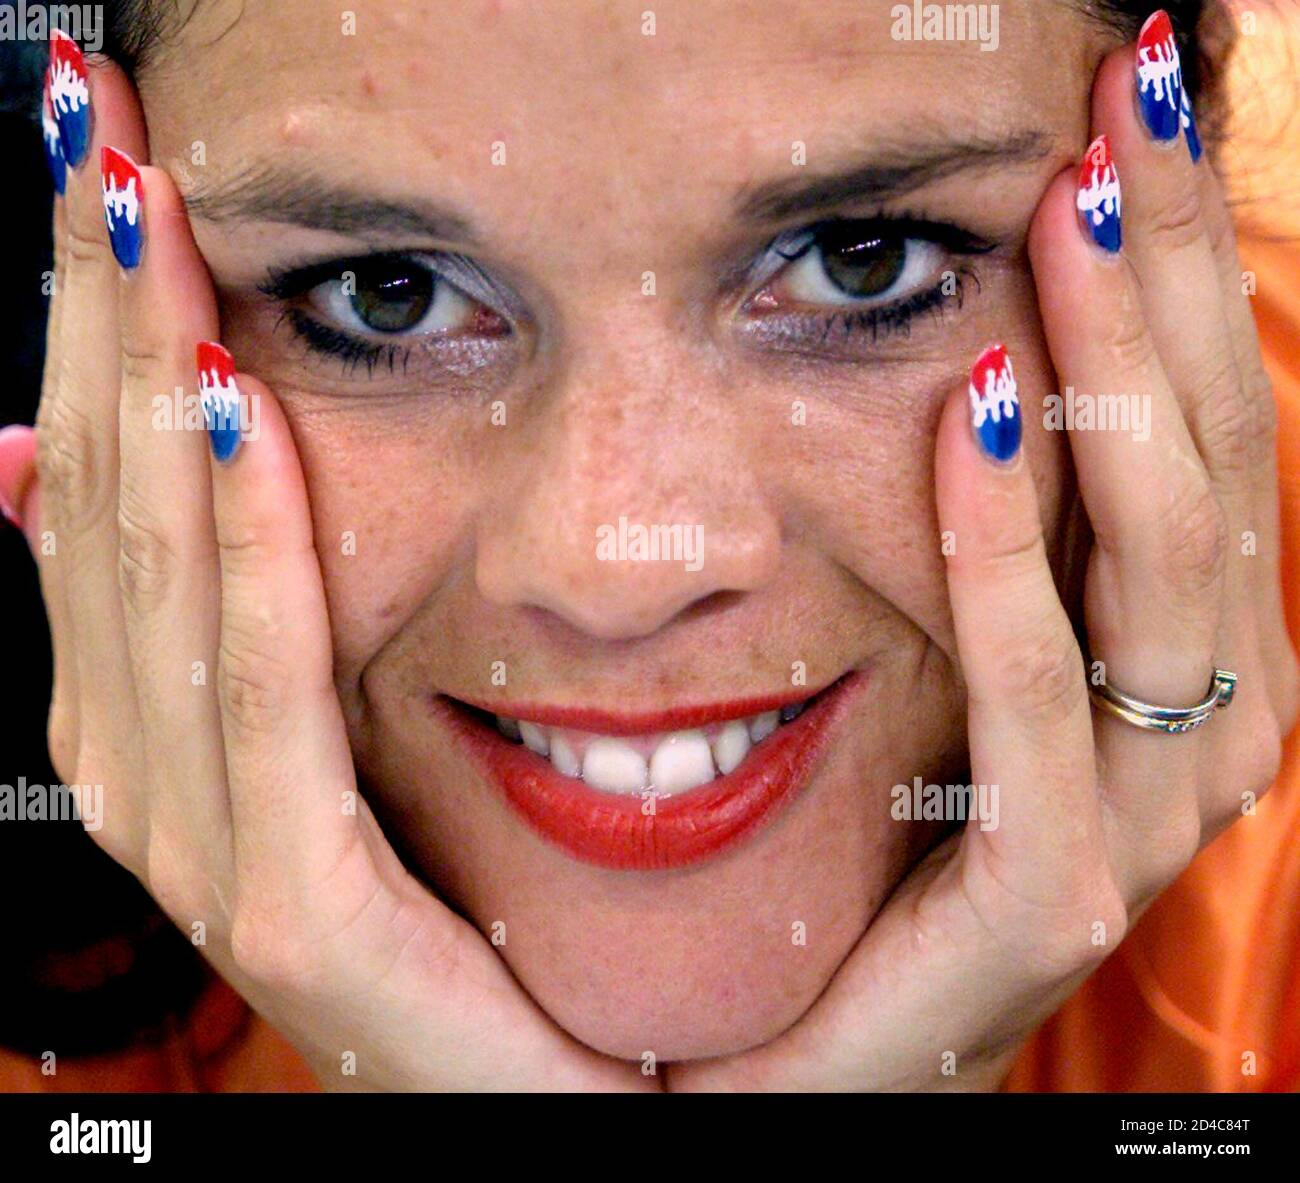 Nails 2000 High Resolution Stock Photography And Images Alamy